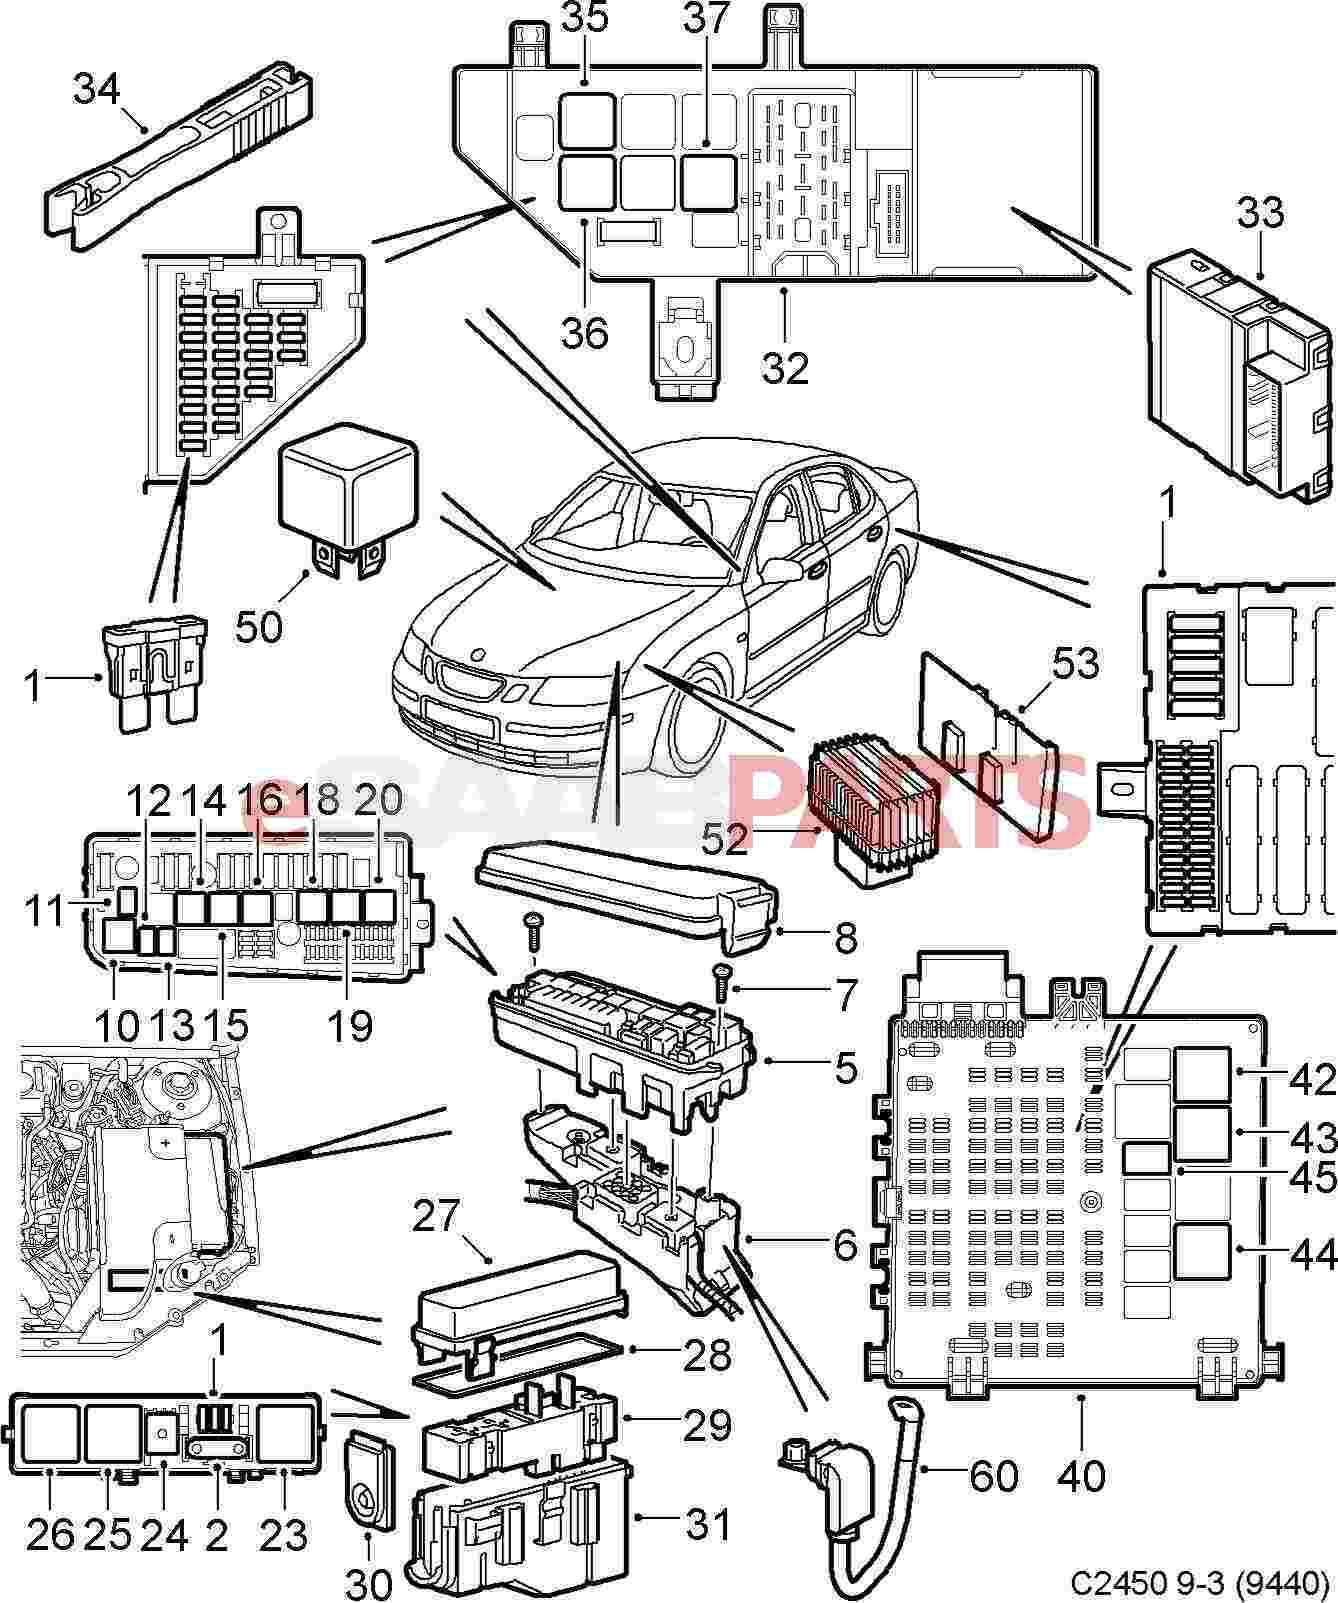 Wiring Diagram 2003 Saab 9 3 Arc Wire Data M25s M28s Electric Esaabparts Com 9440 U003e Electrical Parts Relays Fuses Rh 2004 Convertible Radio Stage Sound